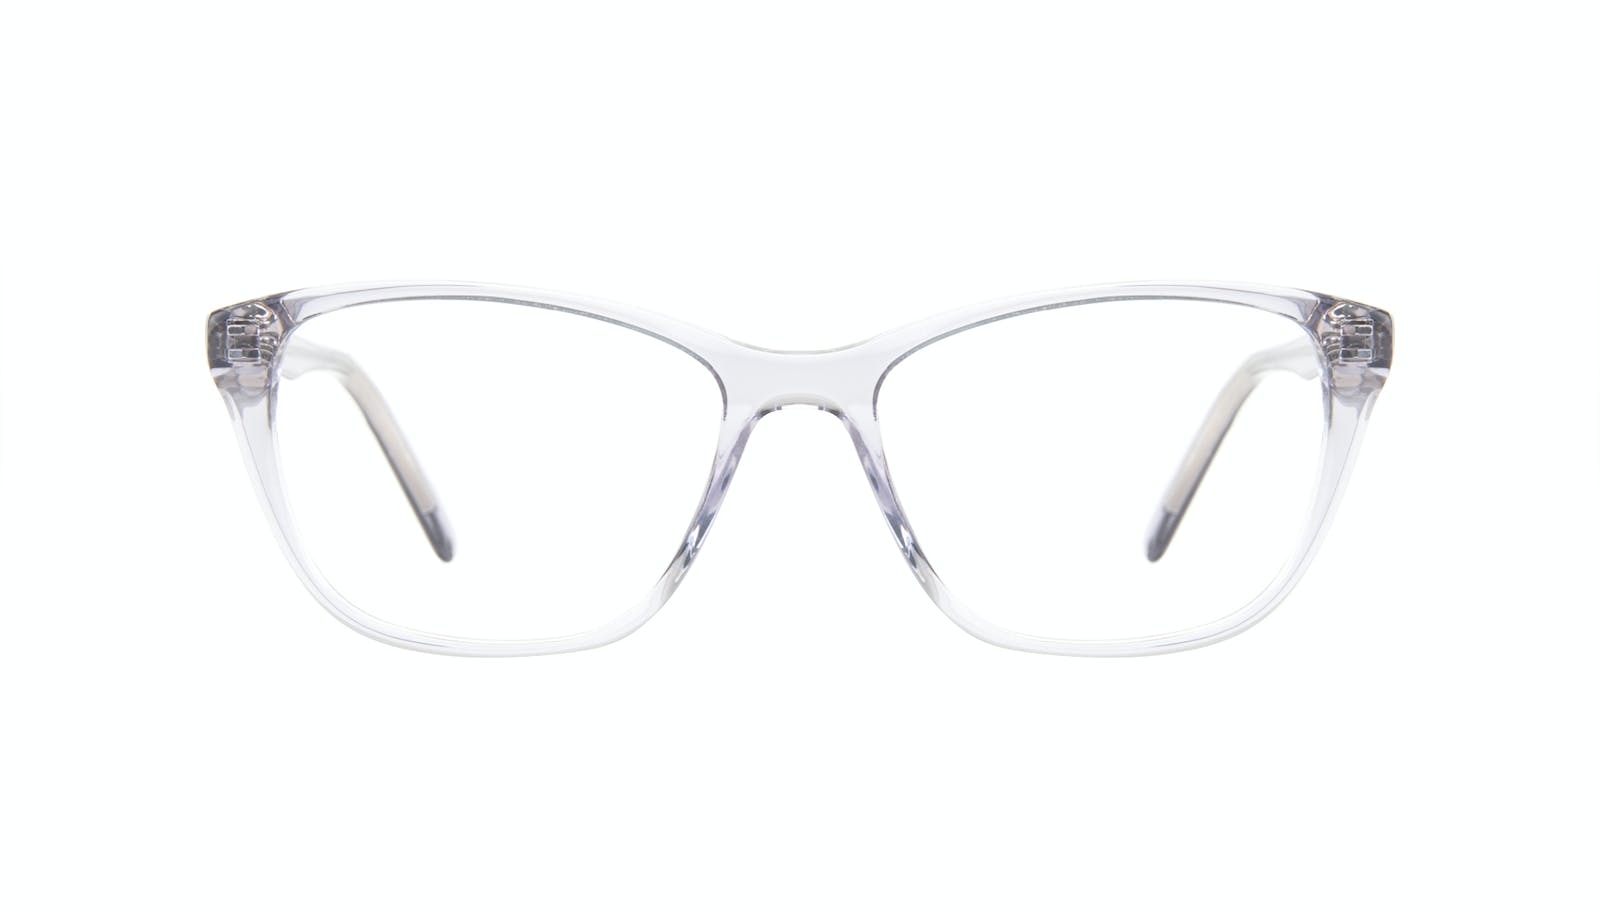 d627f61b4b Affordable Fashion Glasses Cat Eye Eyeglasses Women Myrtle Petite Cloud